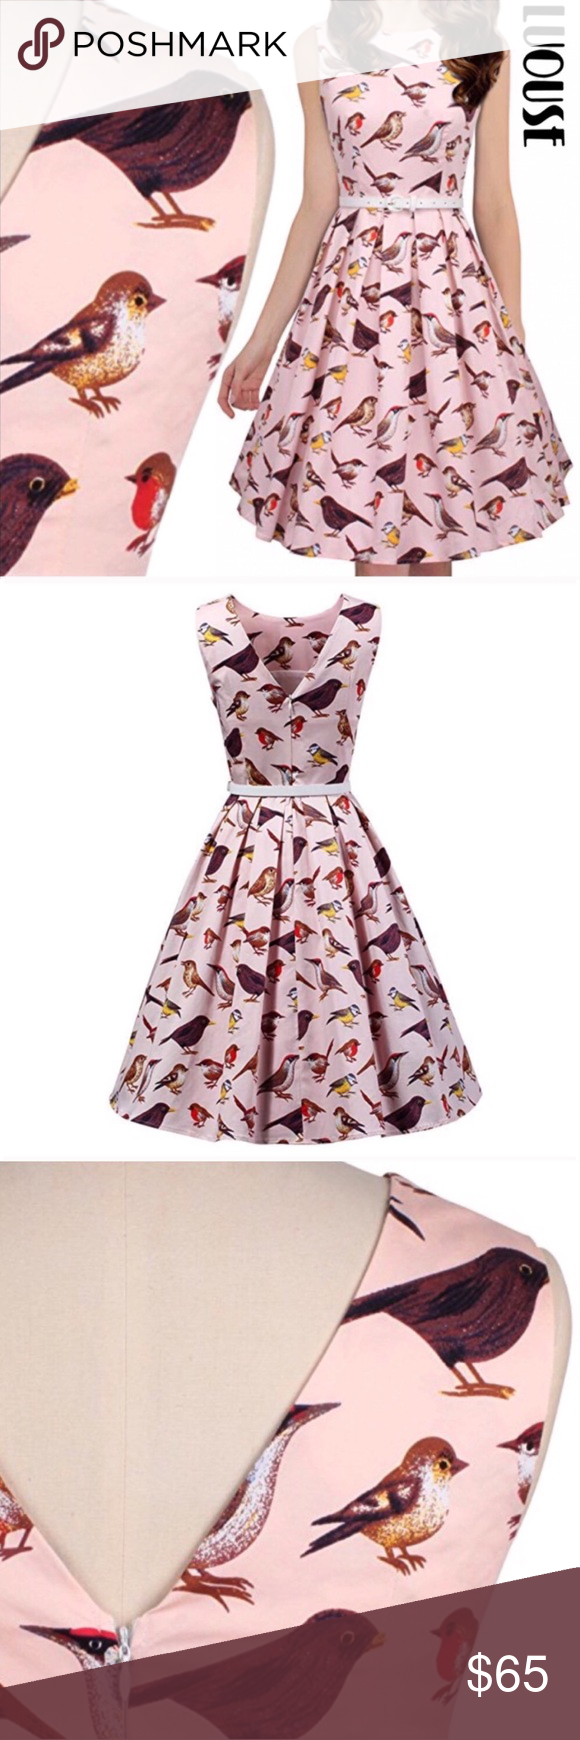 4cc138ae8d4a Luouse Vintage Inspired Rockabilly Swing Dress Luouse Vintage 1950's  Inspired Rockabilly Swing Dress ▫️Size XXL